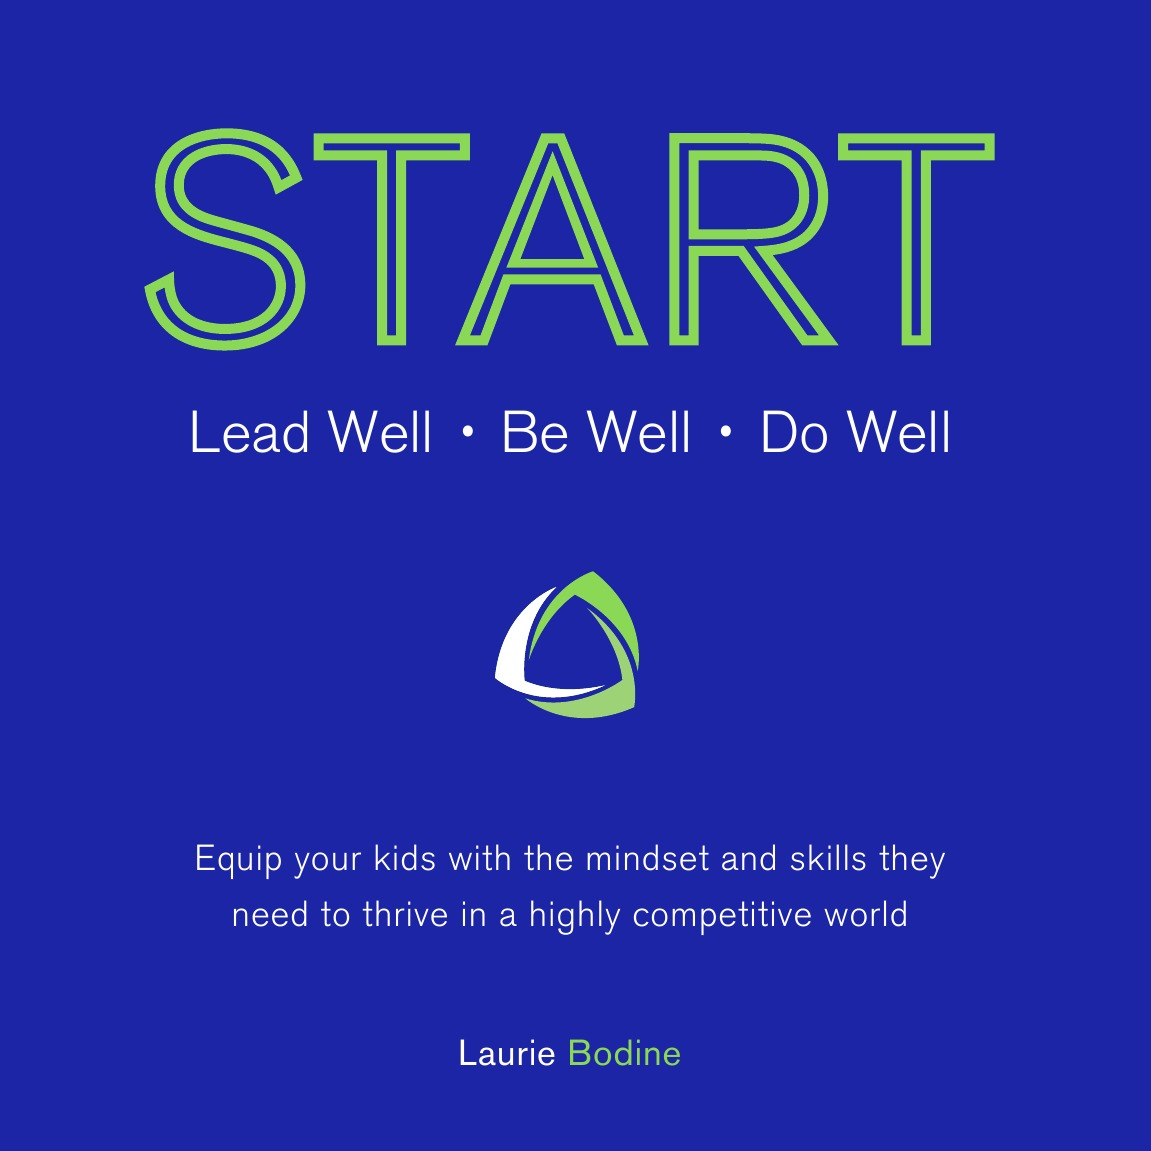 Laurie Bodine START. Lead Well, Be Well, Do Well: Equip your kids with the mindset and skills they need to thrive in a highly competitive world.